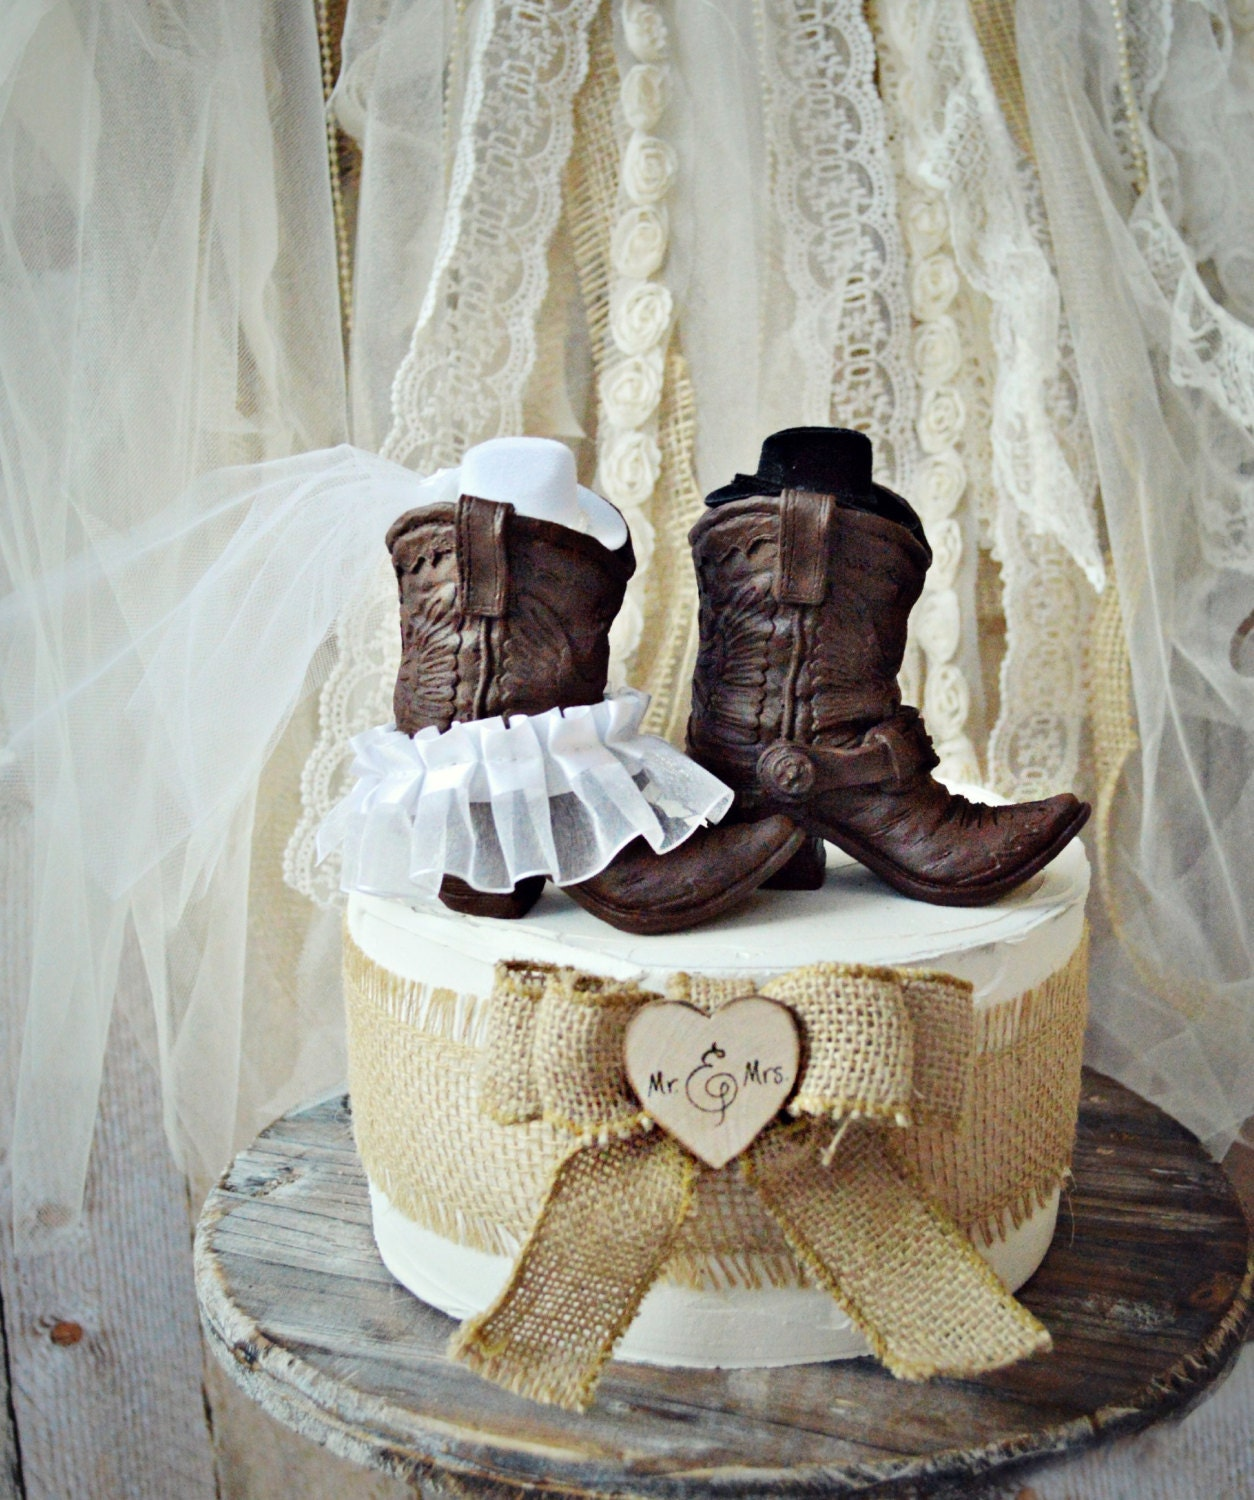 Cowboy Cowgirl Wedding Ideas: Cowboy Boots Wedding Cake Topper-Western Themed Wedding